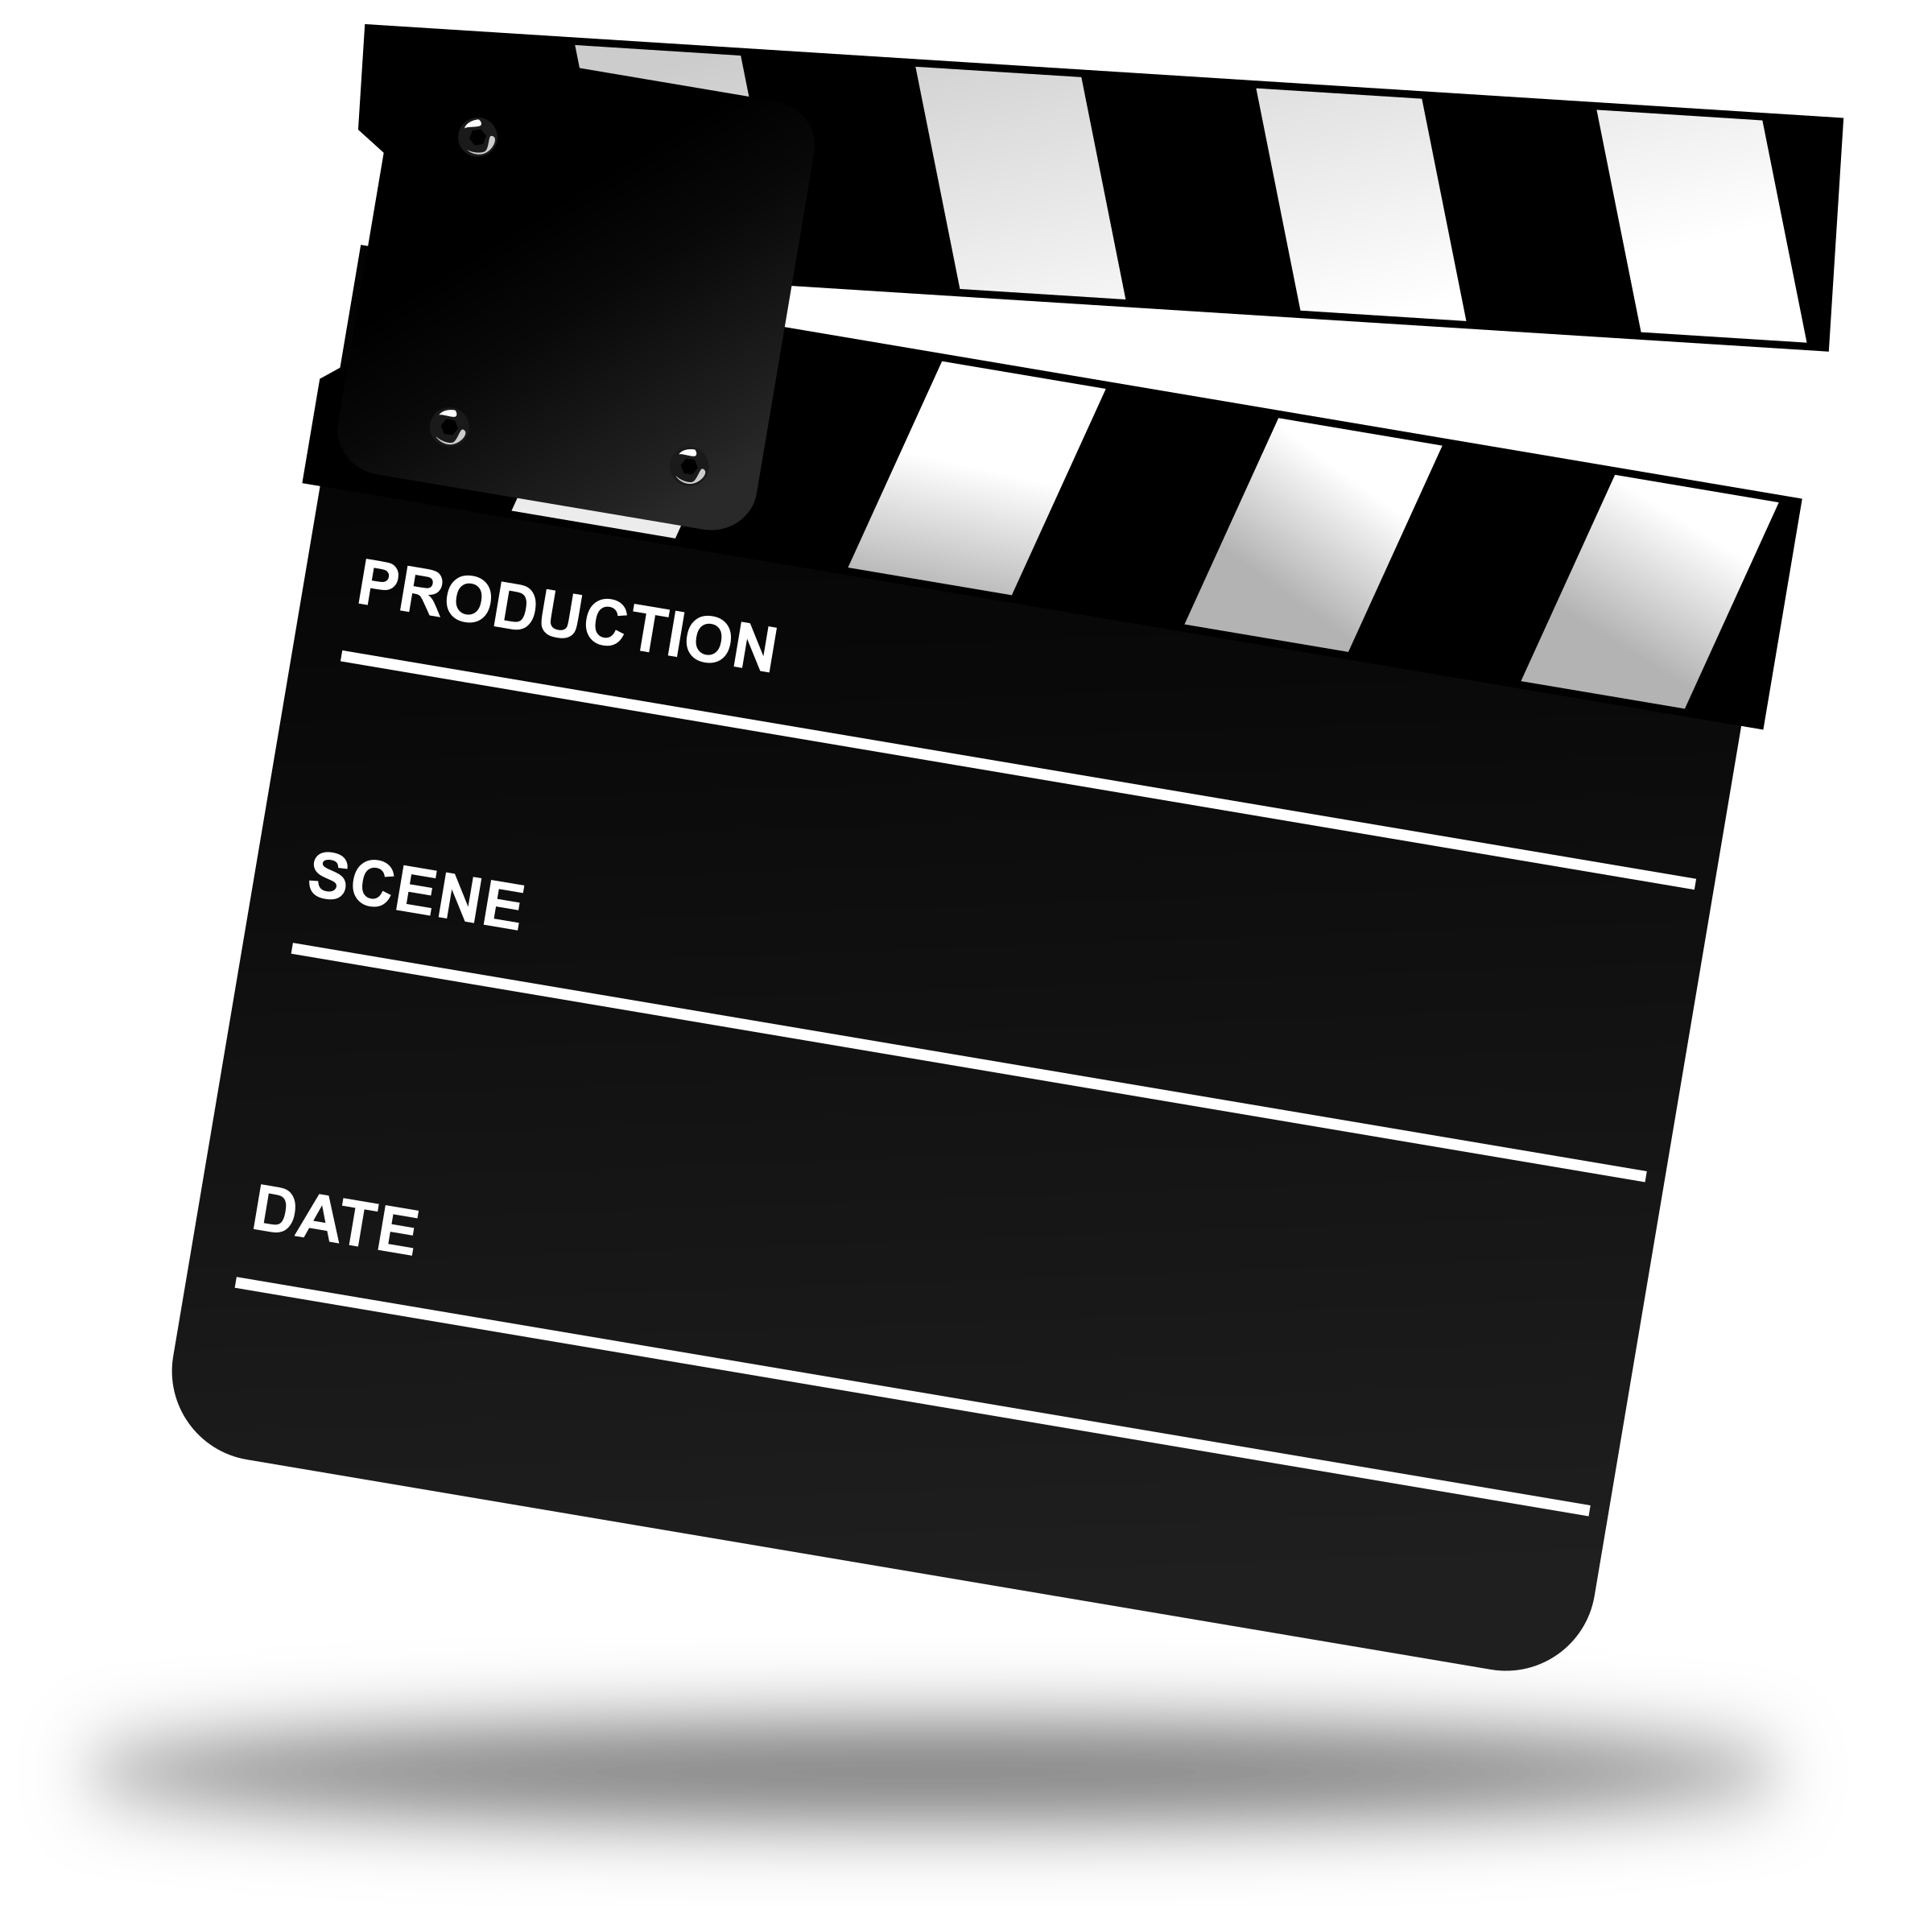 Movie Clapper Board by gnokii